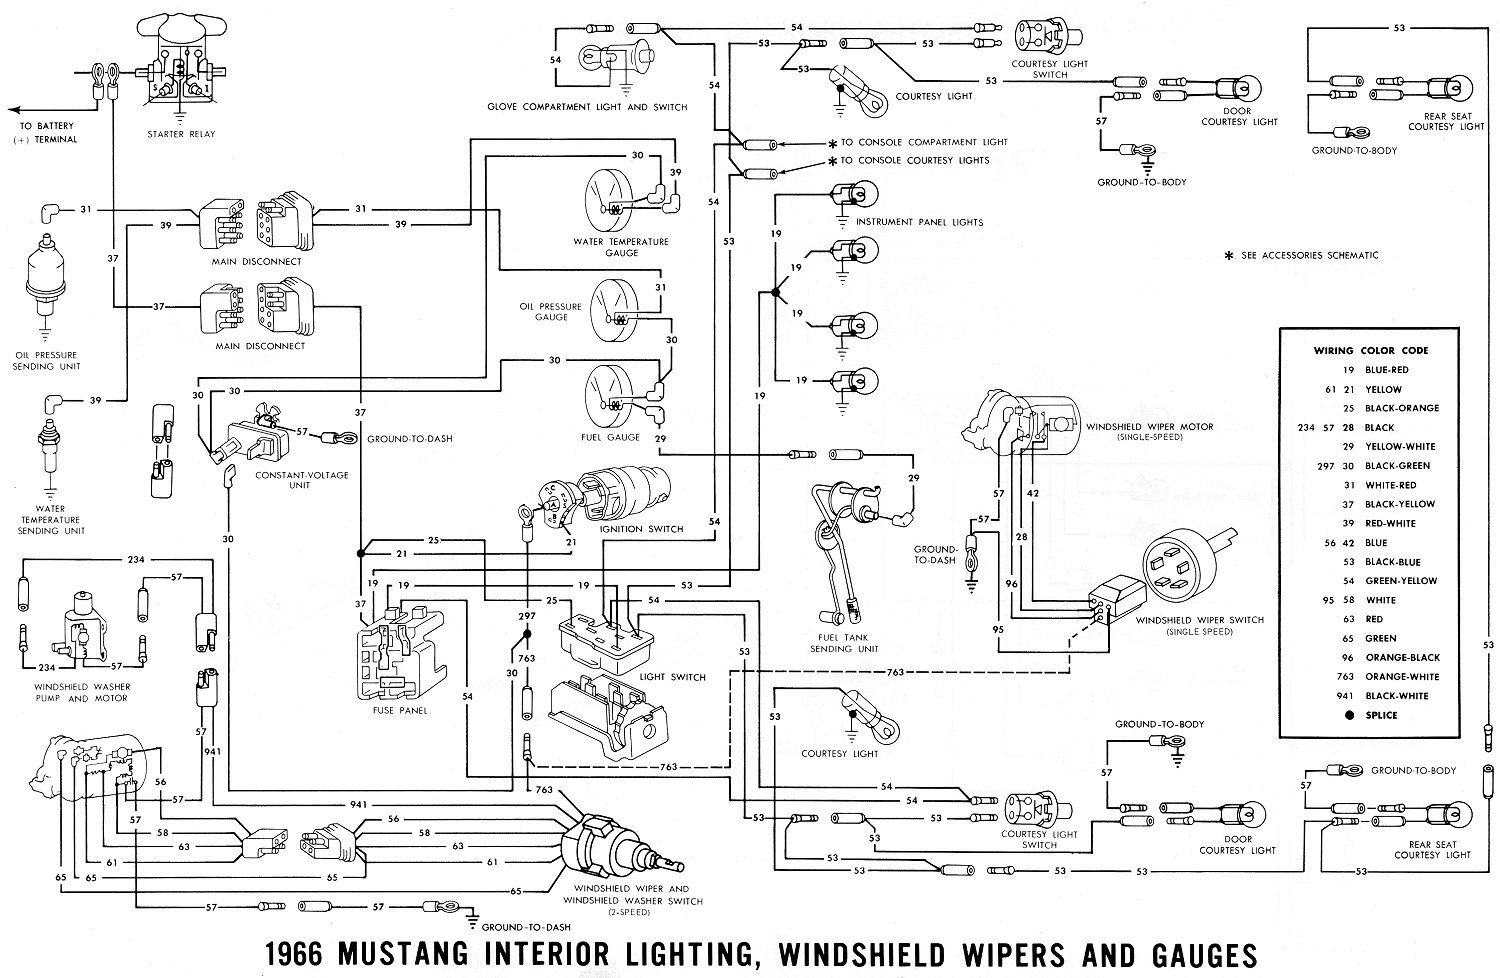 chevelle wiring diagram on 70 chevelle engine wire harness color code